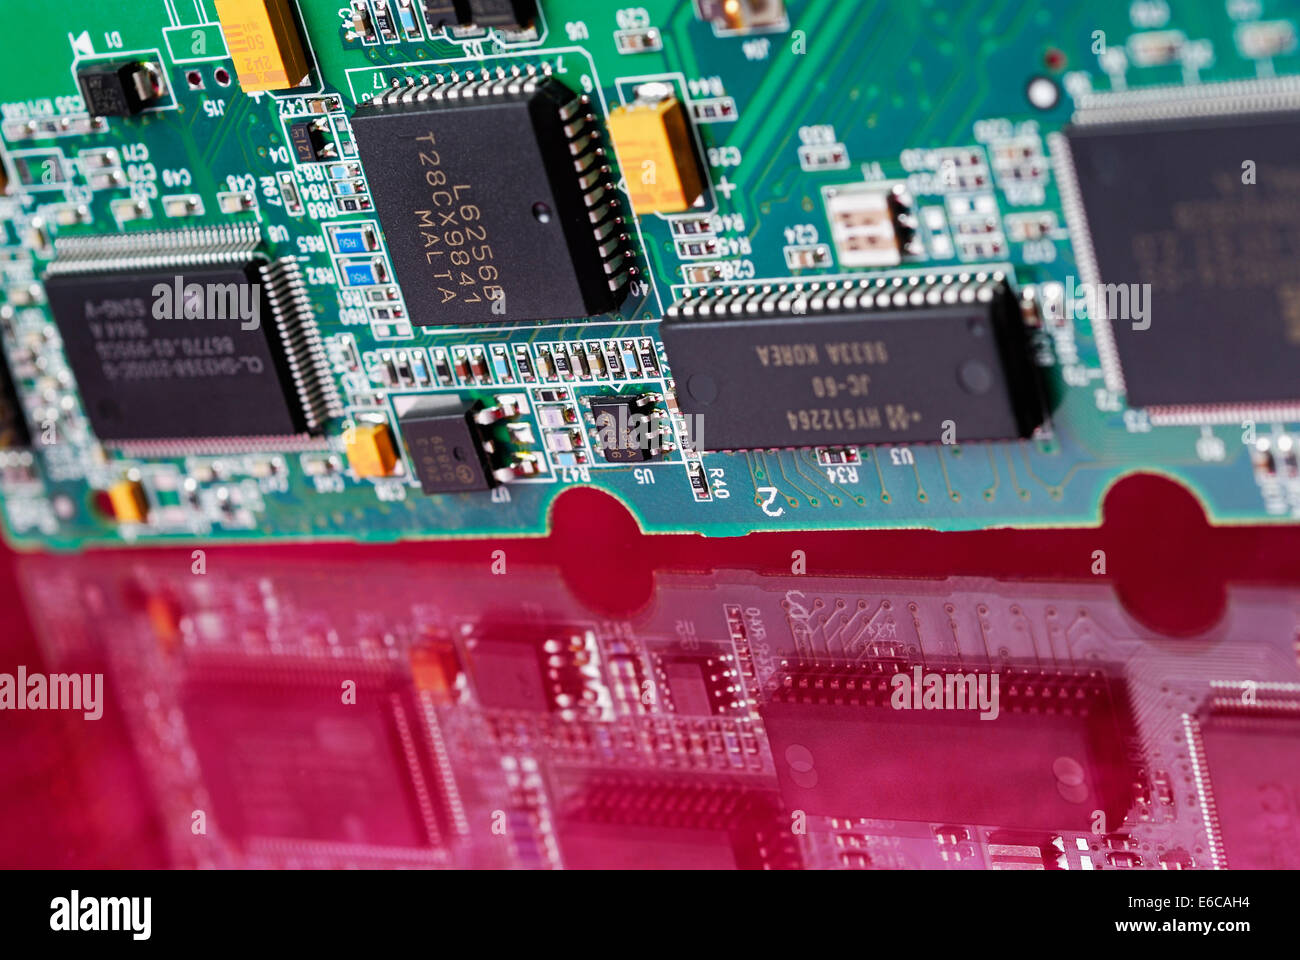 Computer chip circuit board - Stock Image